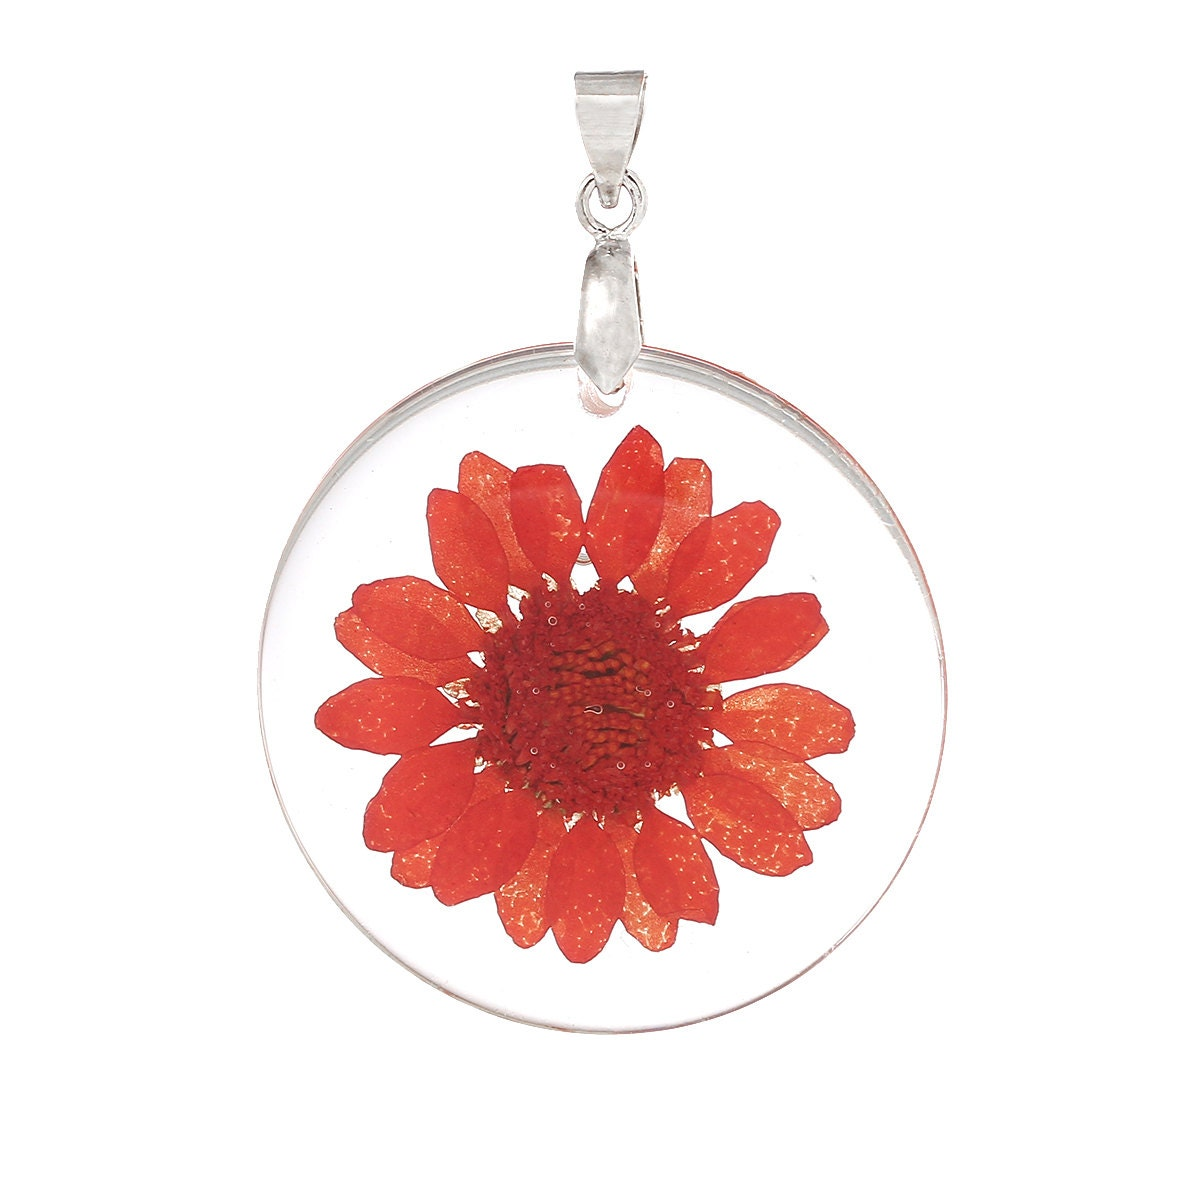 2 acrylic pendants natural real flowers coral red flower with 2 acrylic pendants natural real flowers coral red flower with leaves circle disc shape silver bail 1 14 diameter cha0185 mozeypictures Image collections